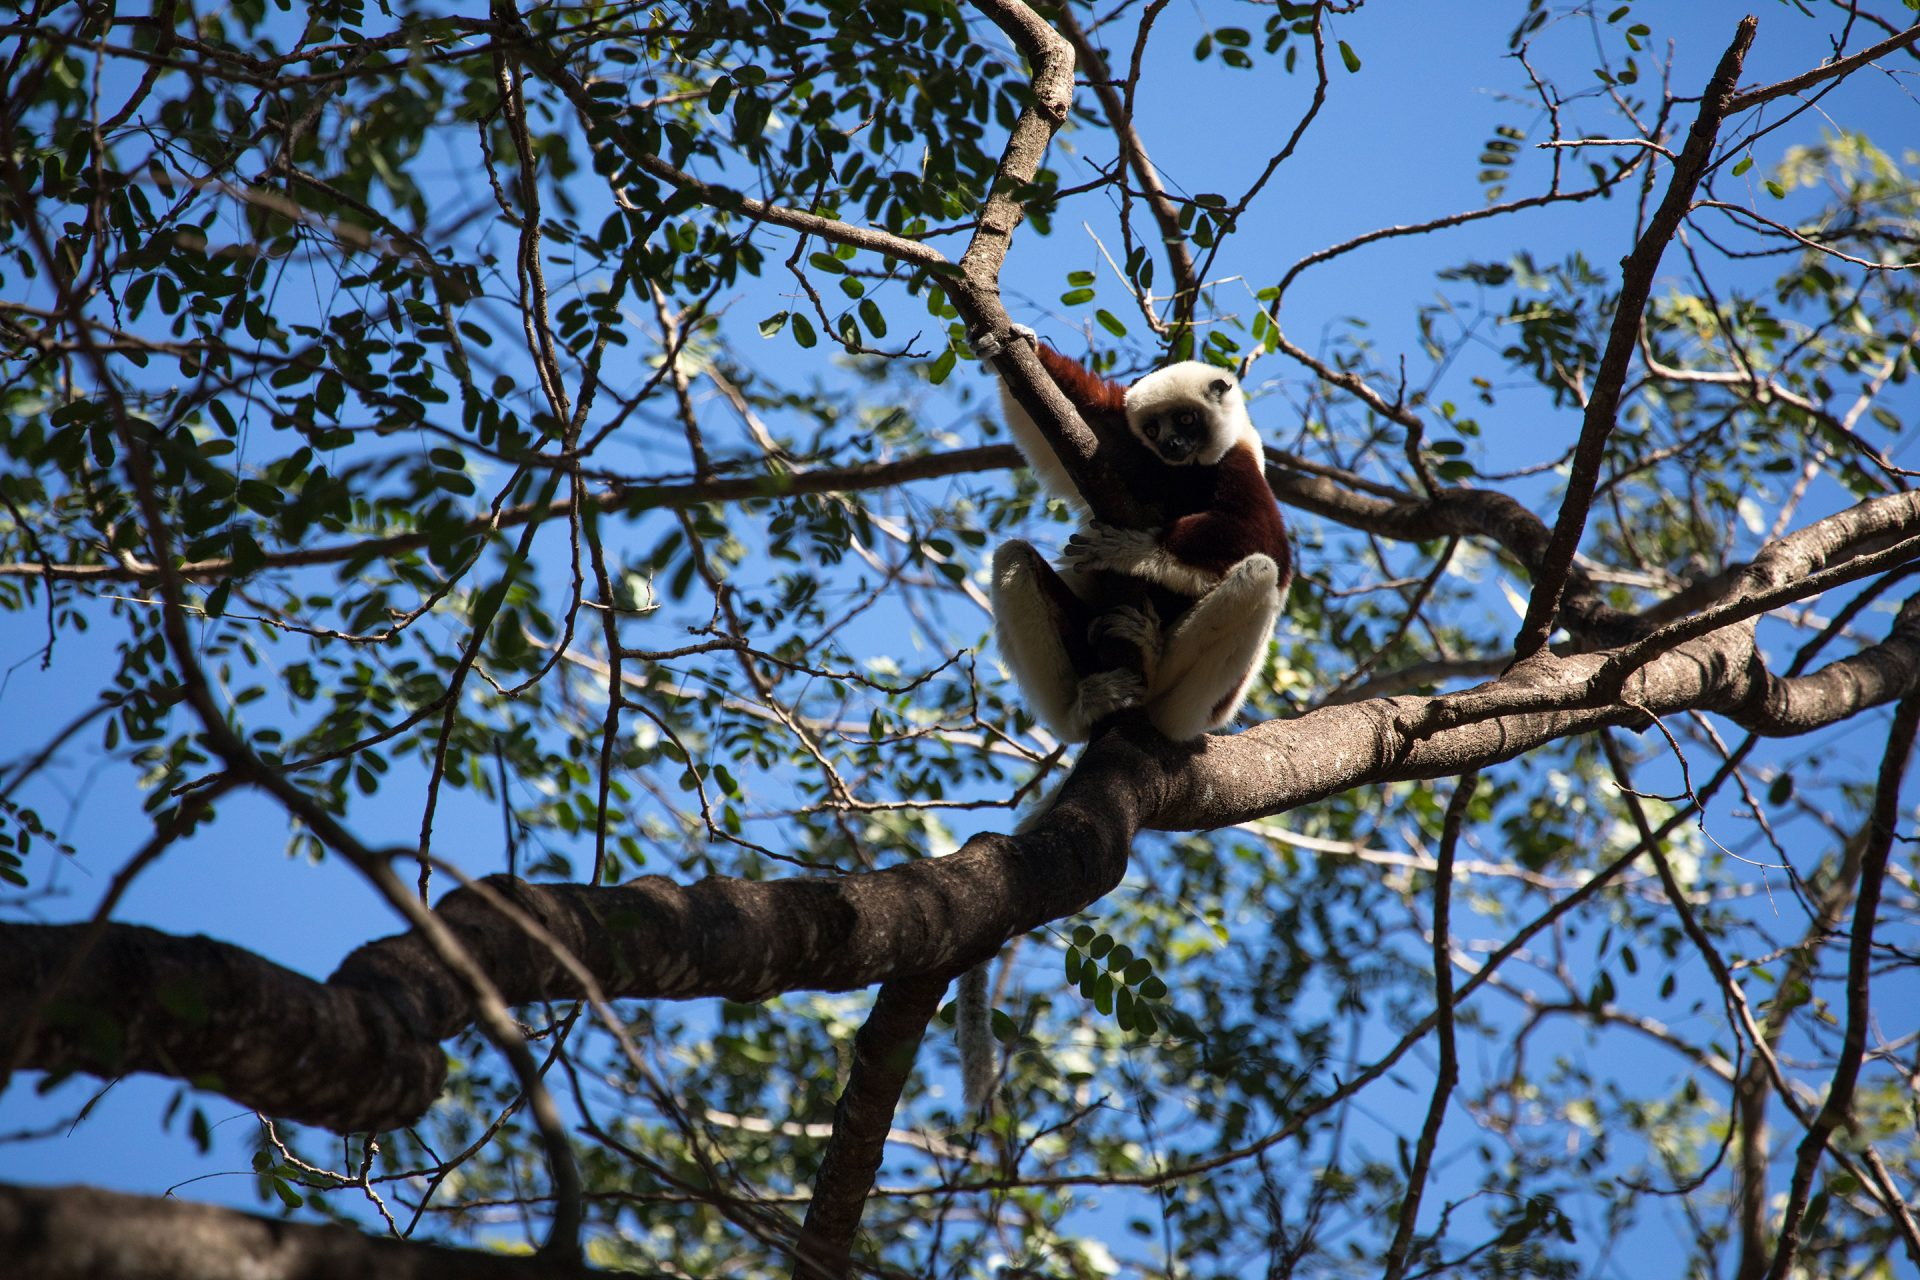 Coquerel's Sifaka in Ankarafantsika National Park